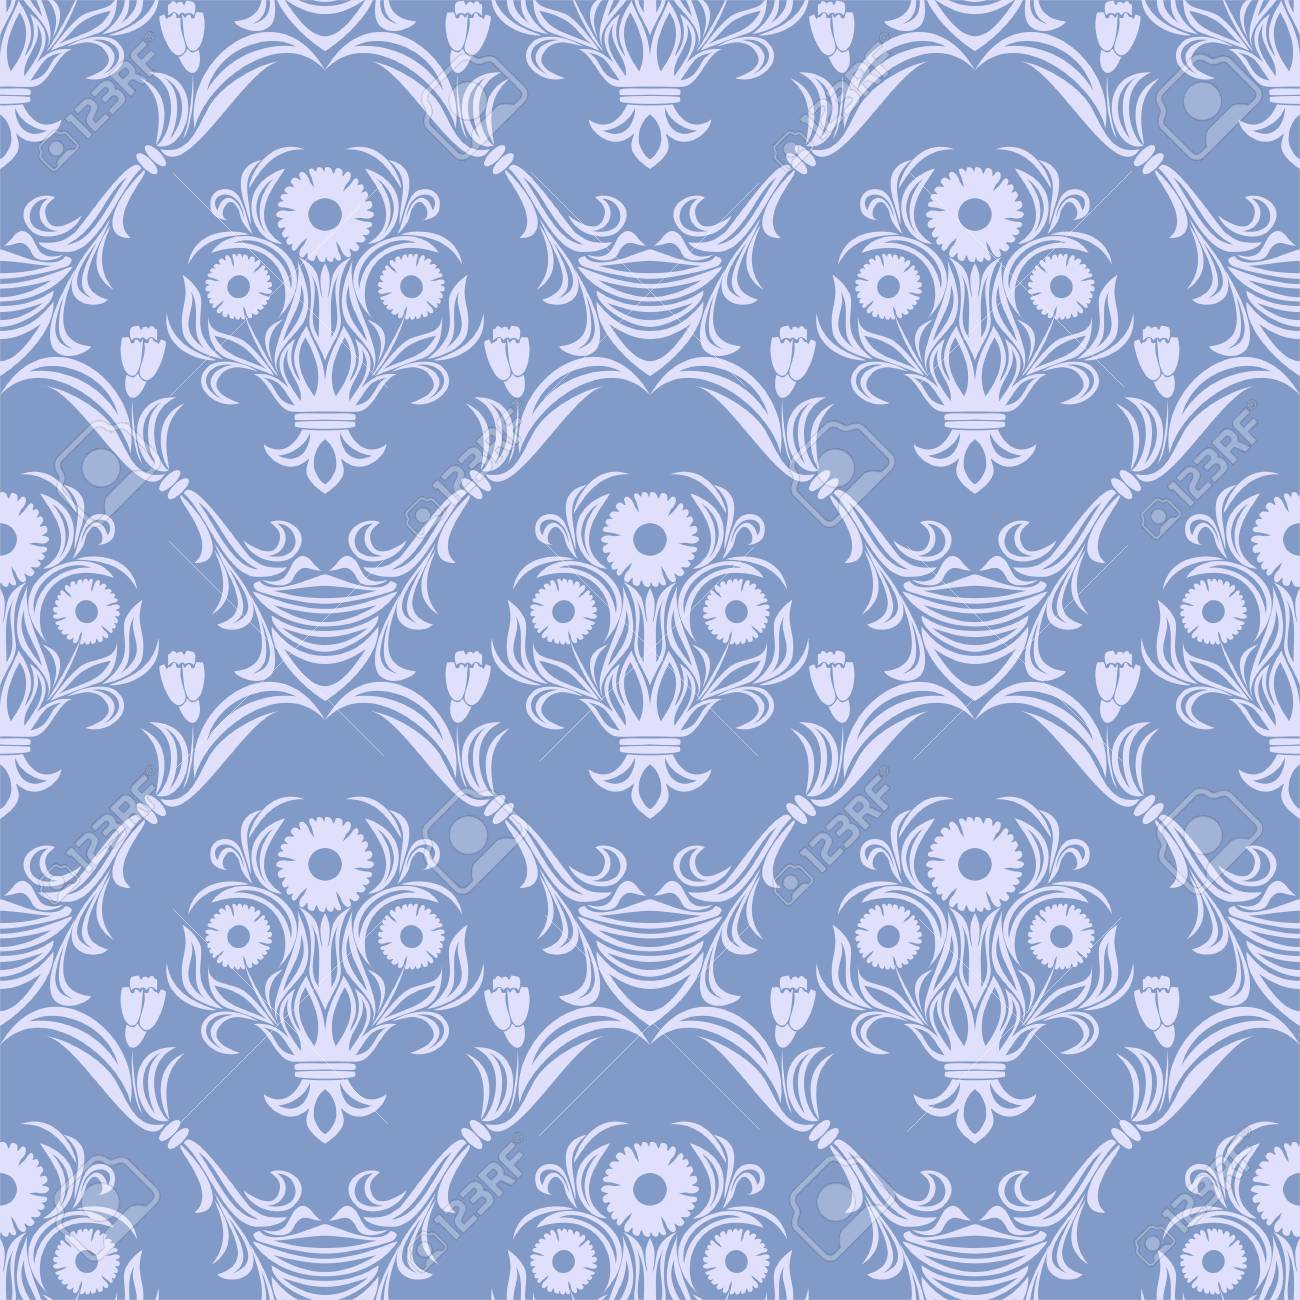 Damask seamless retro Wallpaper - Ornament with bouquet of Flowers. - 97509689